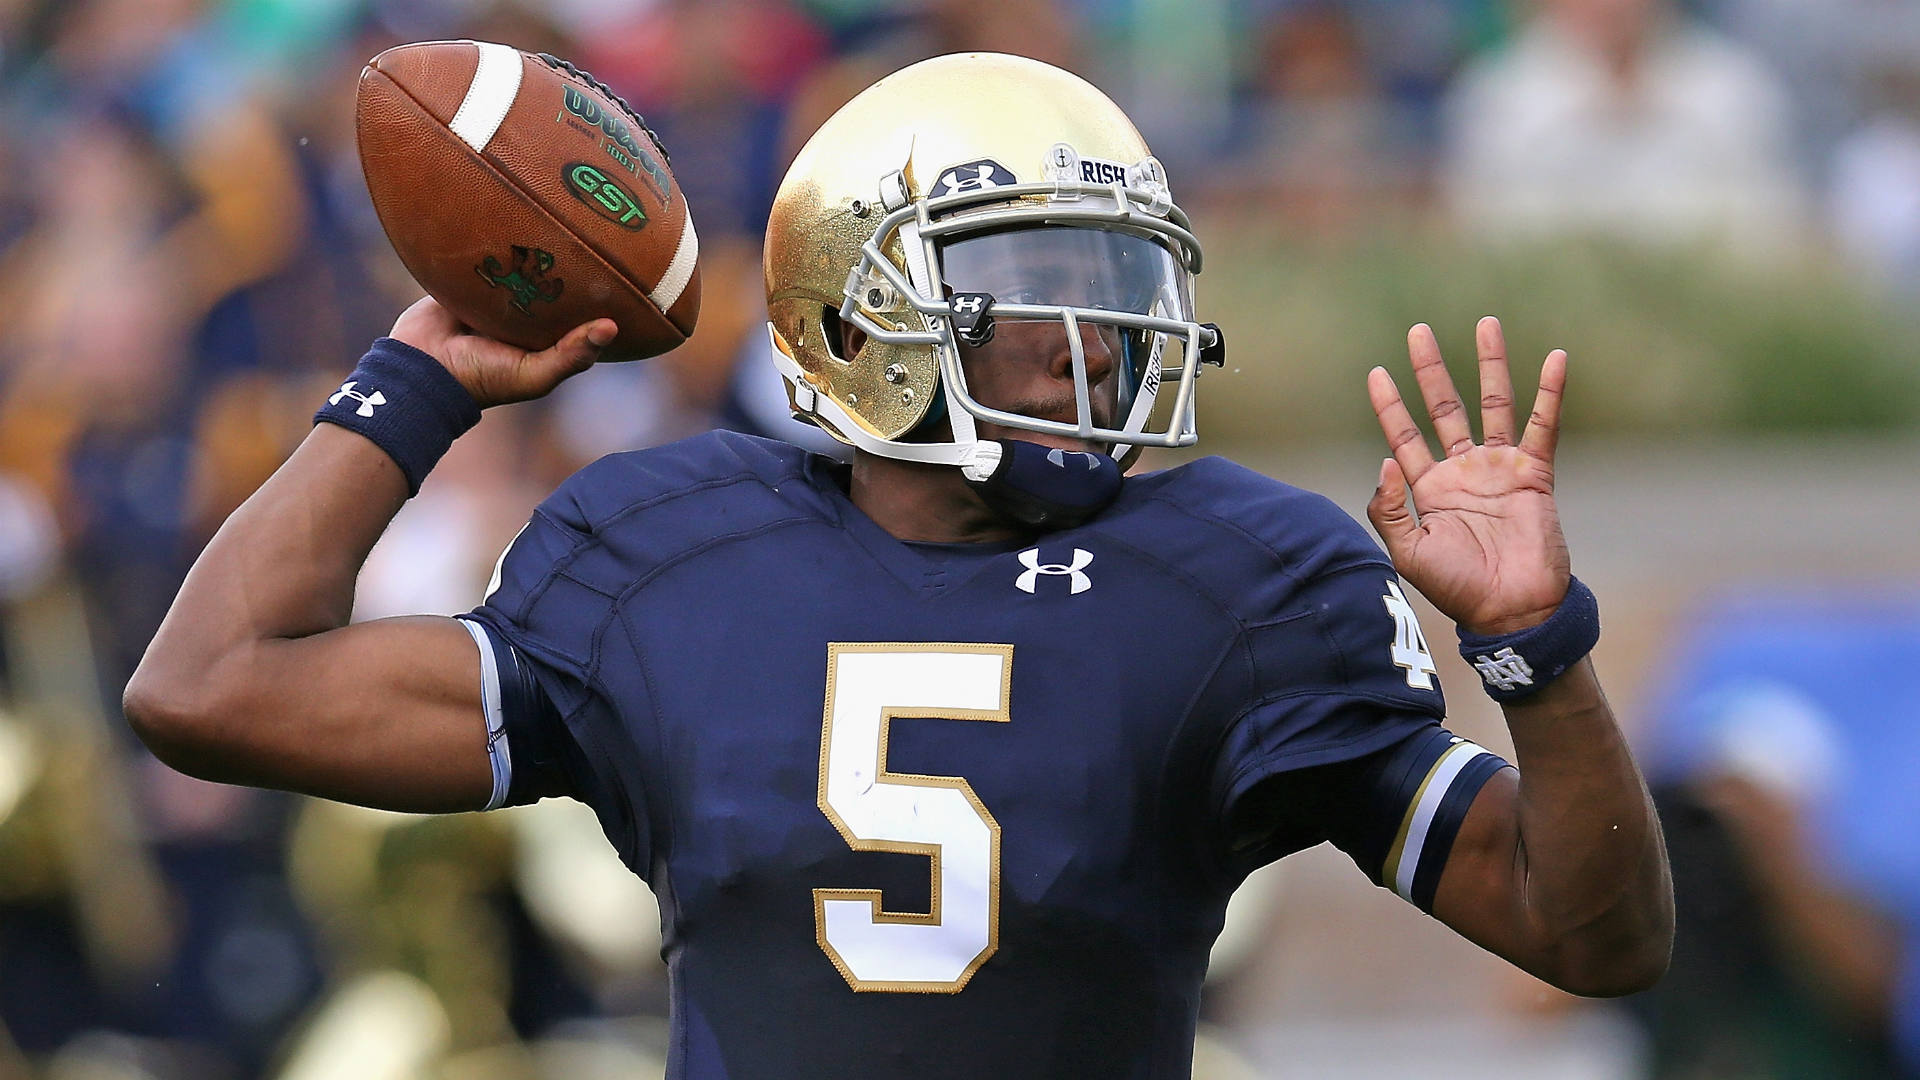 Florida State's odds halved in Vegas upon Everett Golson's transfer